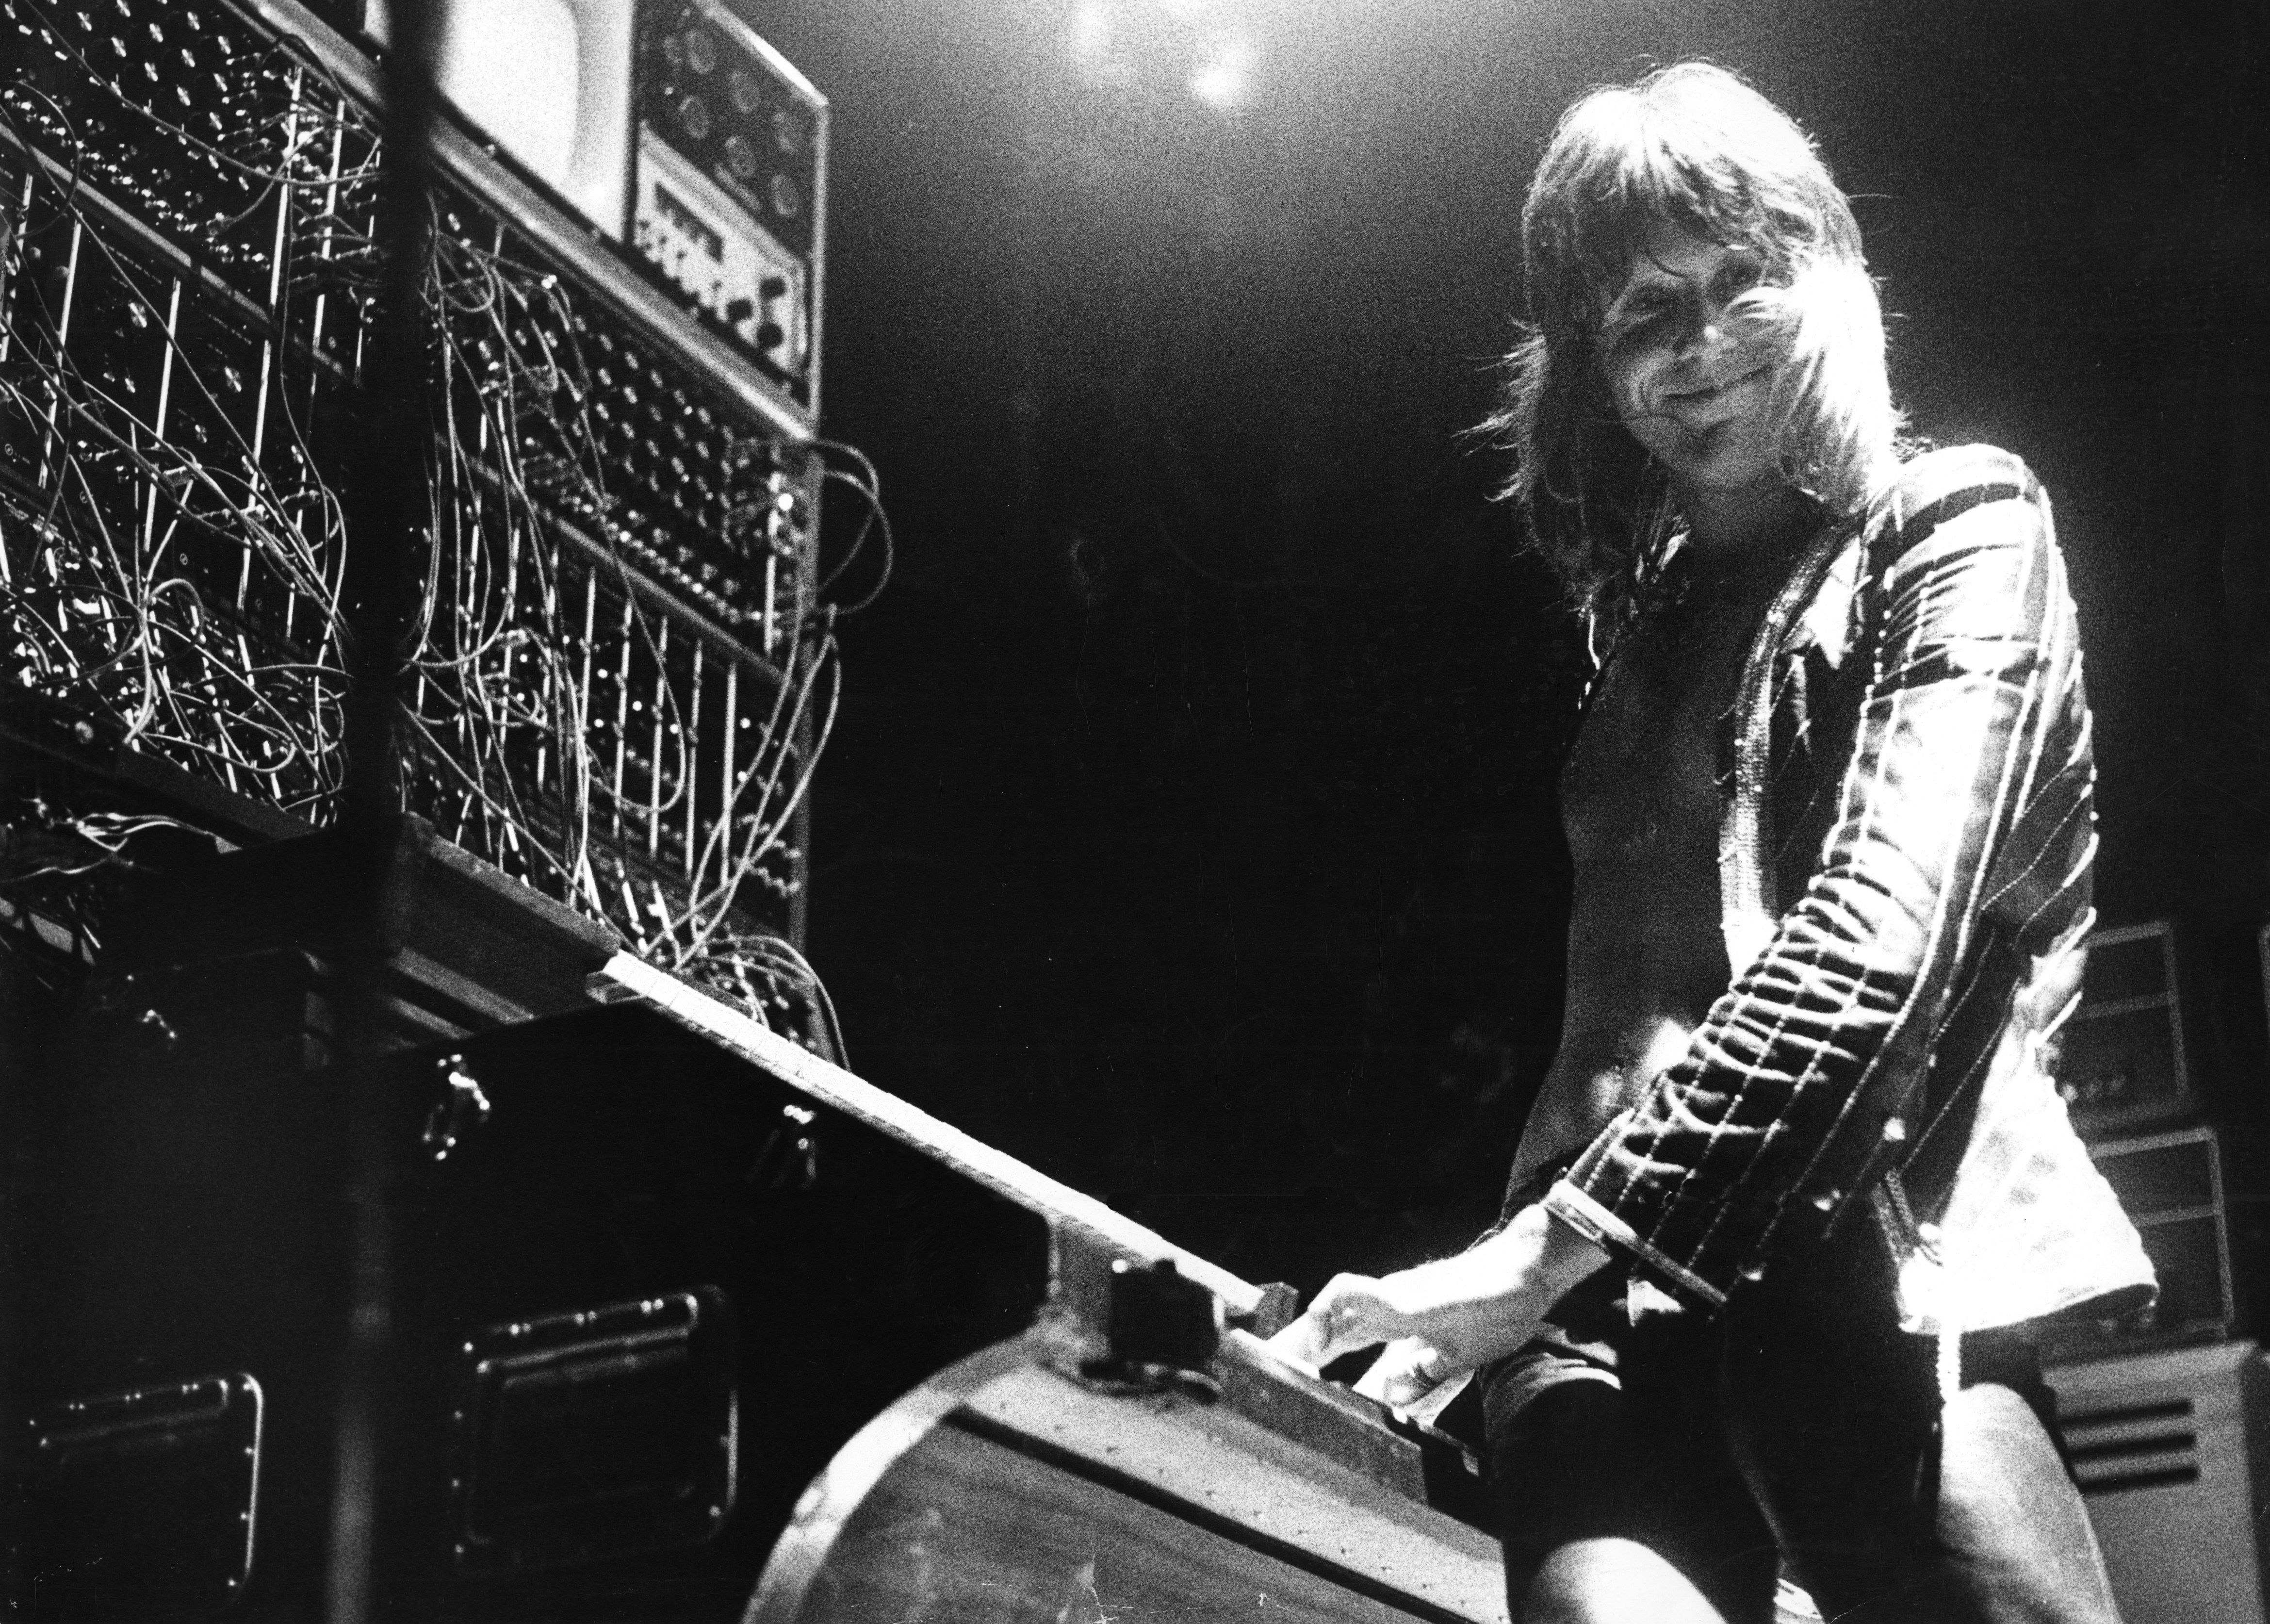 ROTTERDAM, NETHERLANDS - MAY 25: Keith Emerson from Emerson Lake & Palmer performs live on stage at Ahoy, Rotterdam on May 25 1974  (Photo by vCaem/Hanekroot/Redferns)